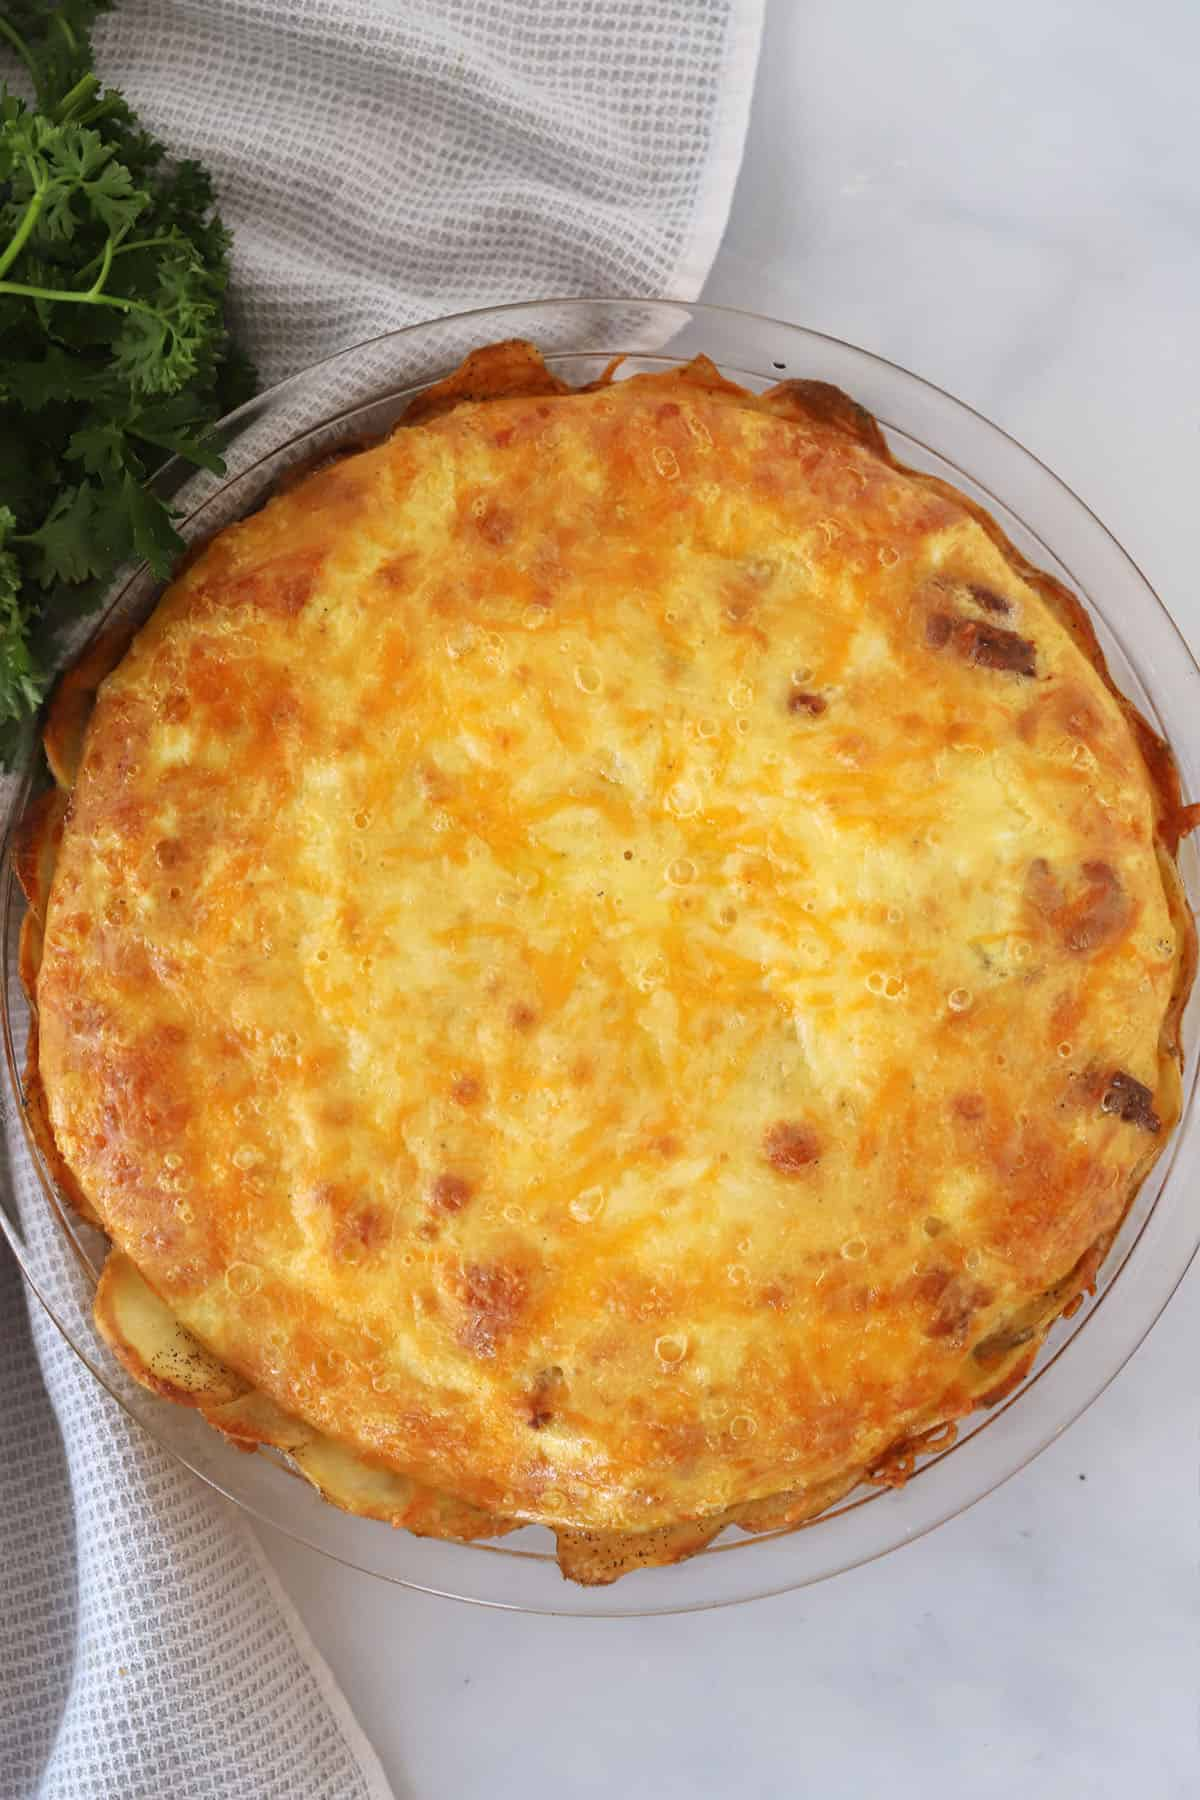 A baked quiche on a table.